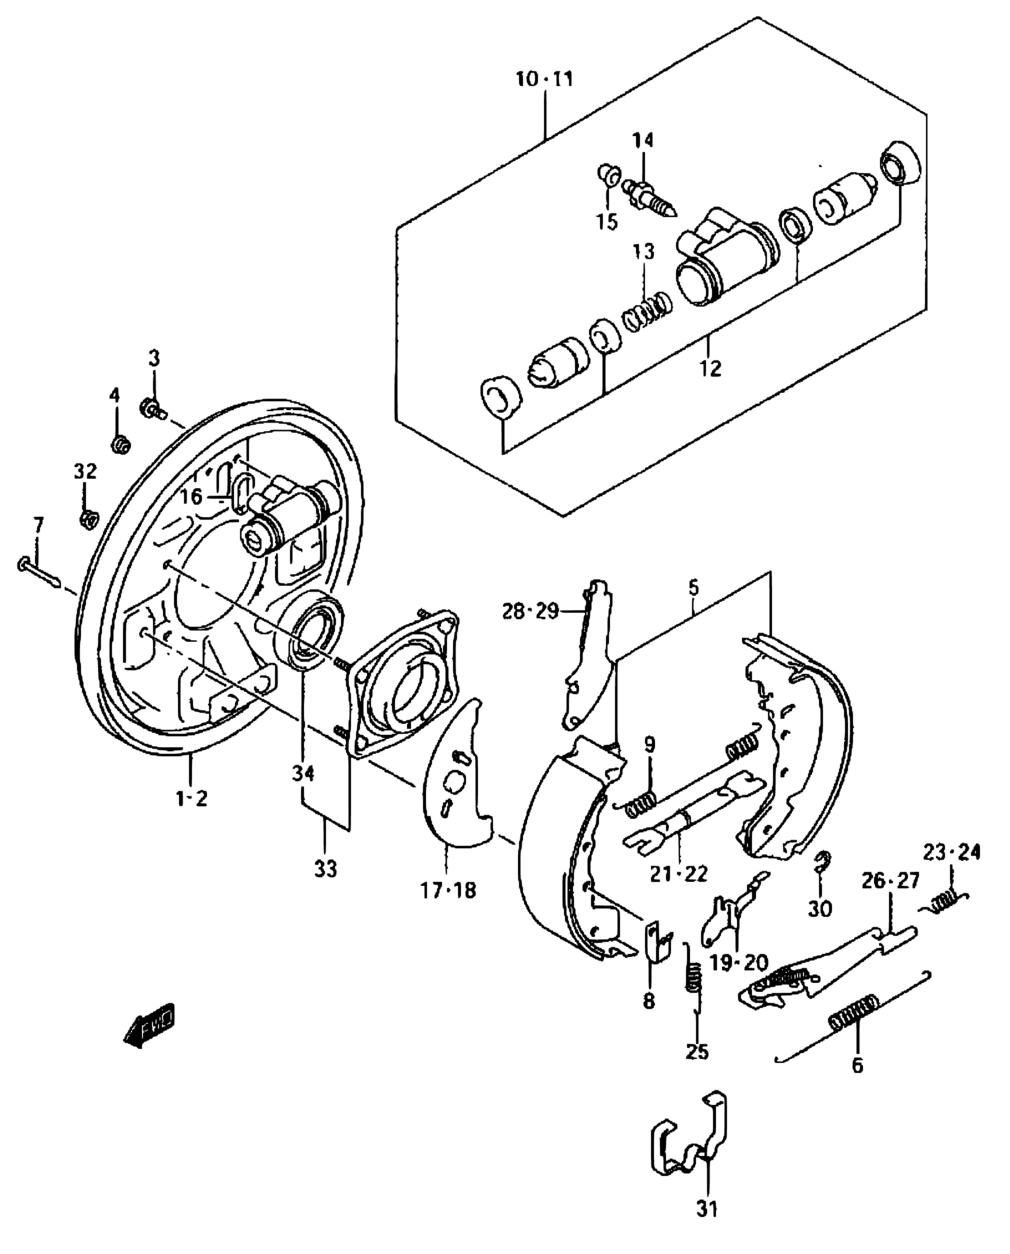 Suzuki Vitara Rear Brake Diagram